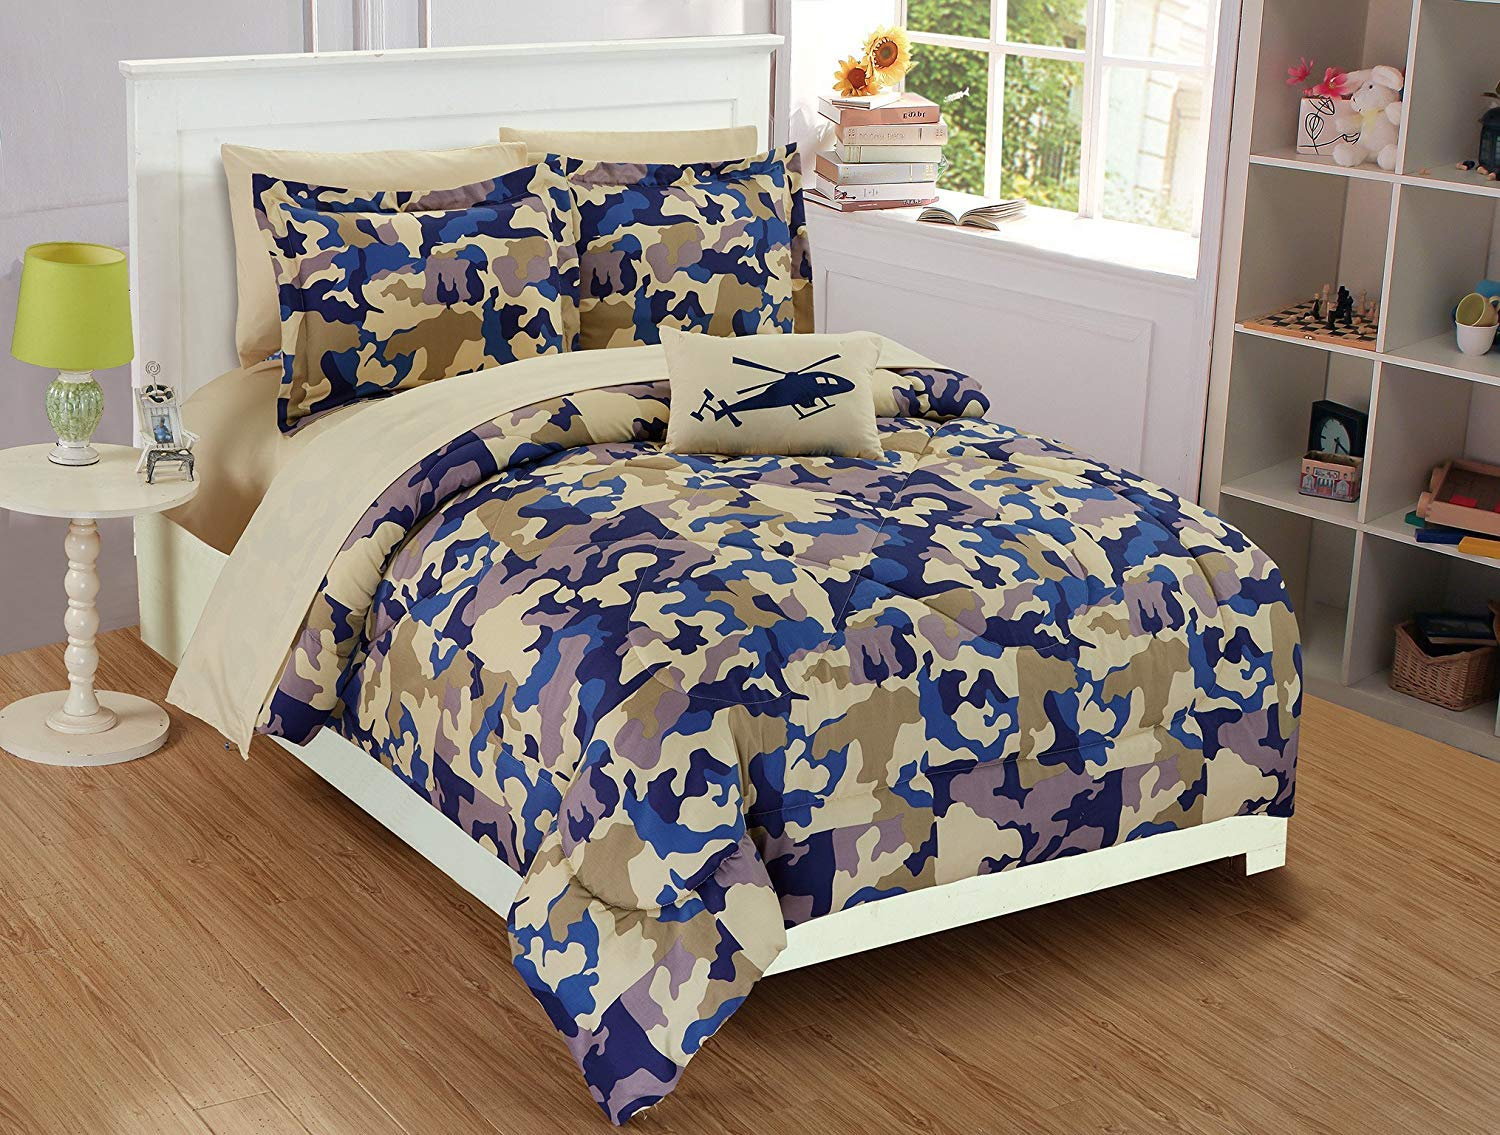 Mk Collection 6pc Twin Comforter Set with Decorative Pillow Camouflage Army Beige Blue Taupe Off White New